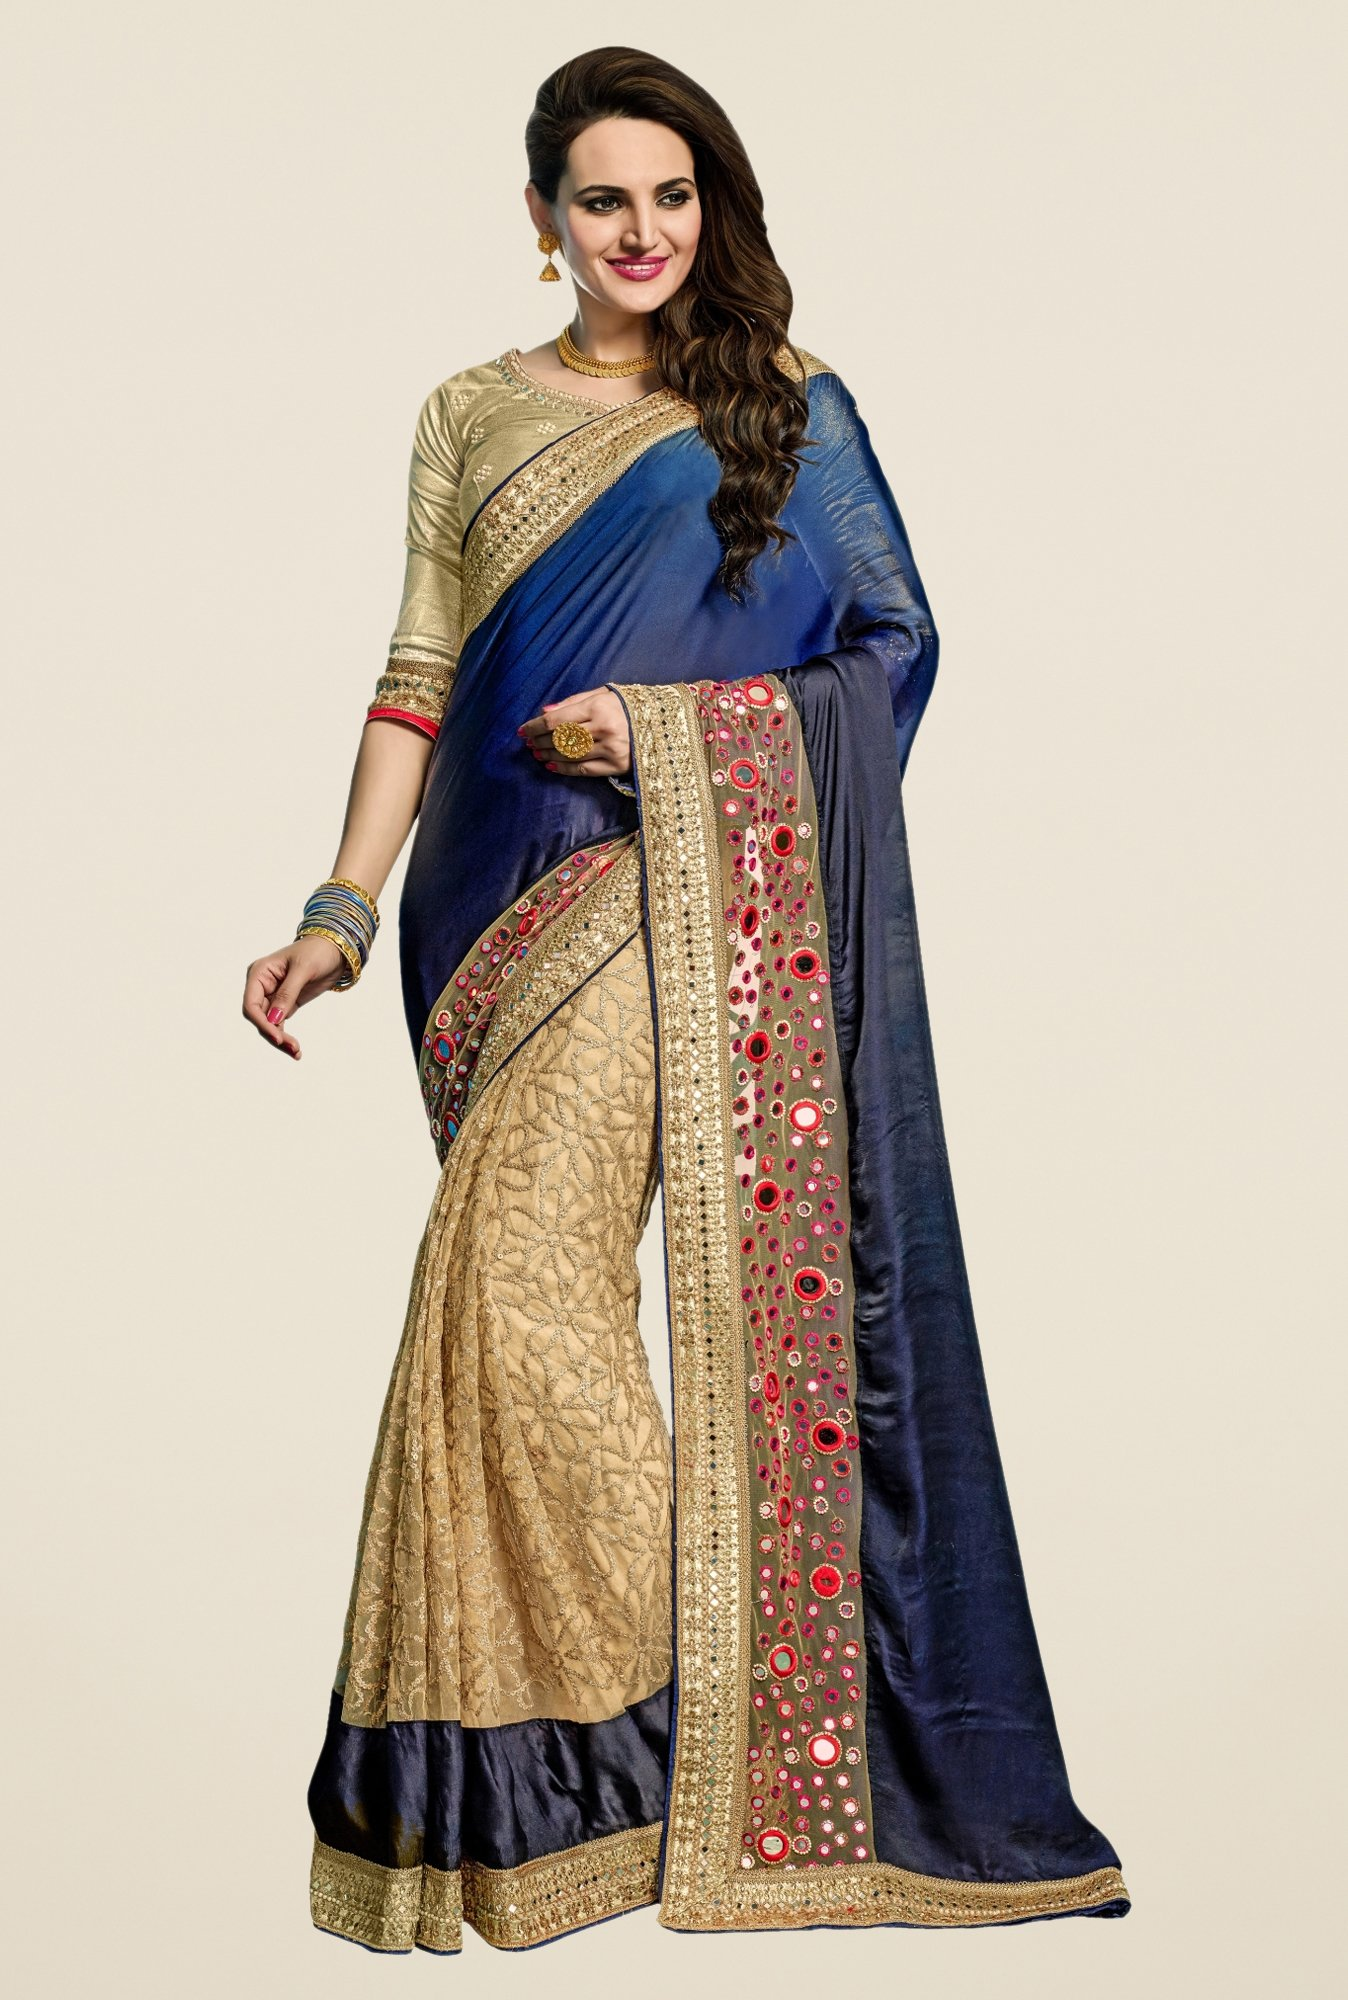 Triveni Sophisticated Beige & Navy Georgette Net Saree